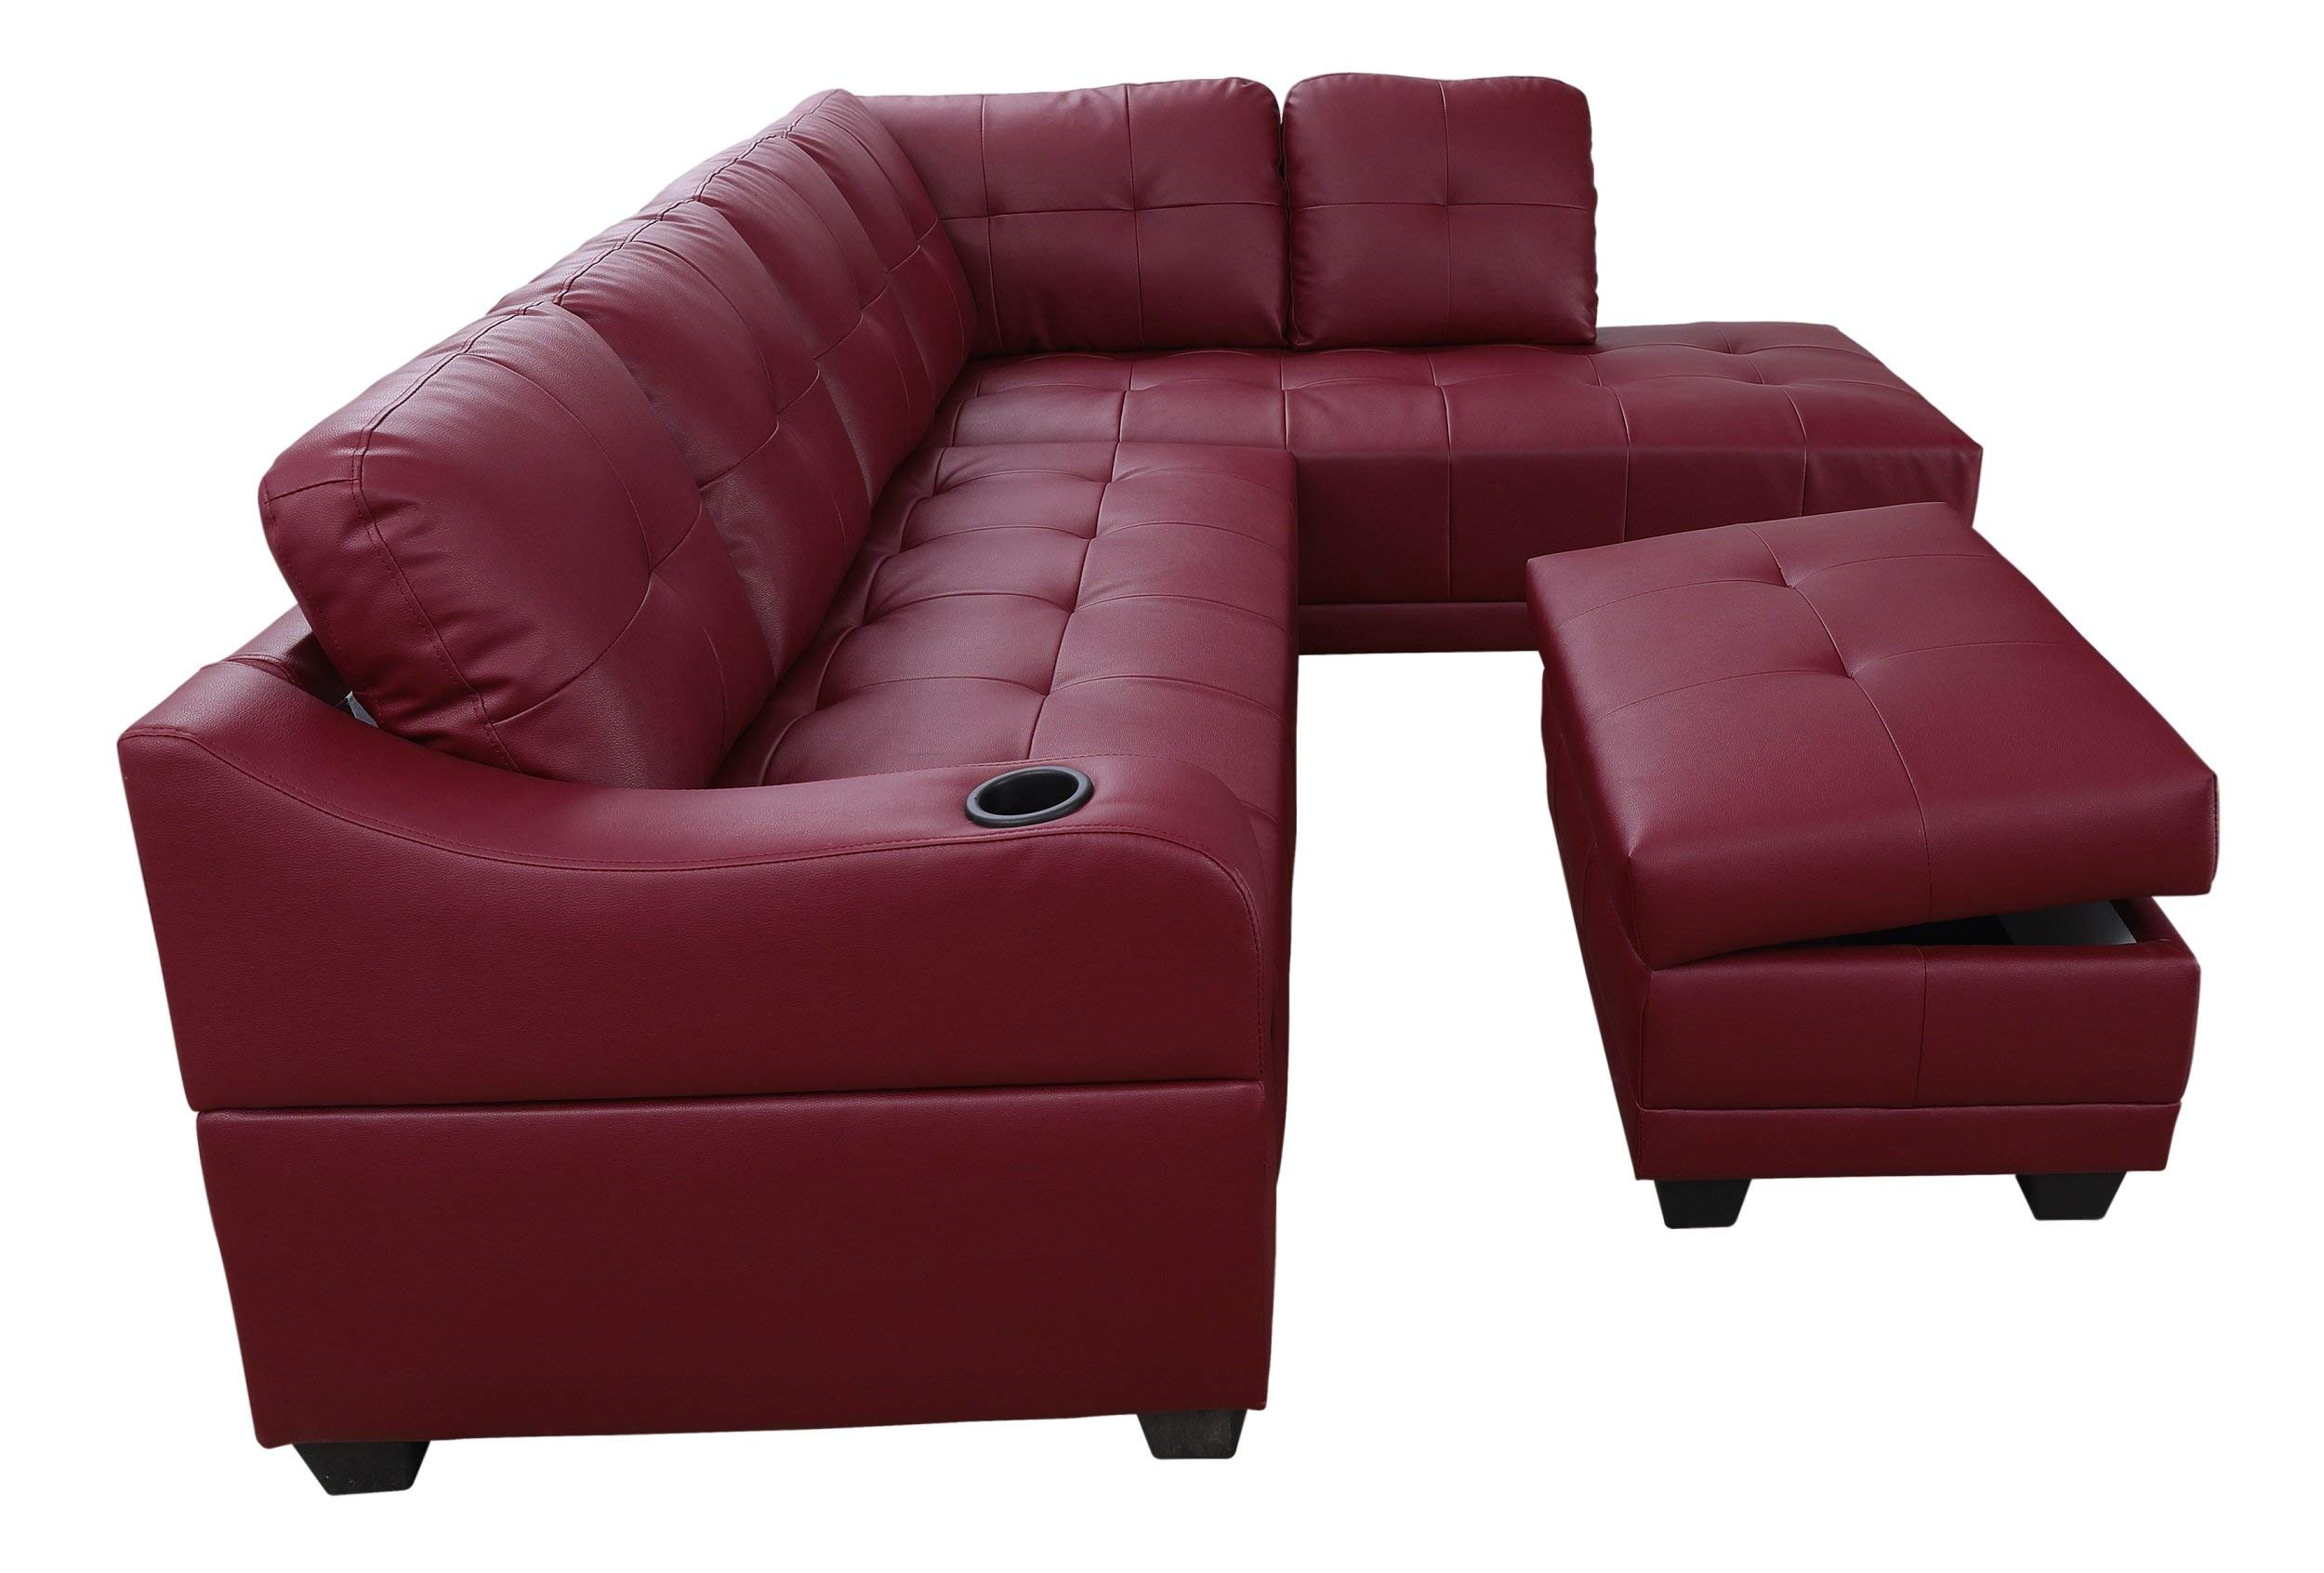 Beverly Fine Funiture Sectional Sofa Set, Burgundy by Beverly Fine Funiture